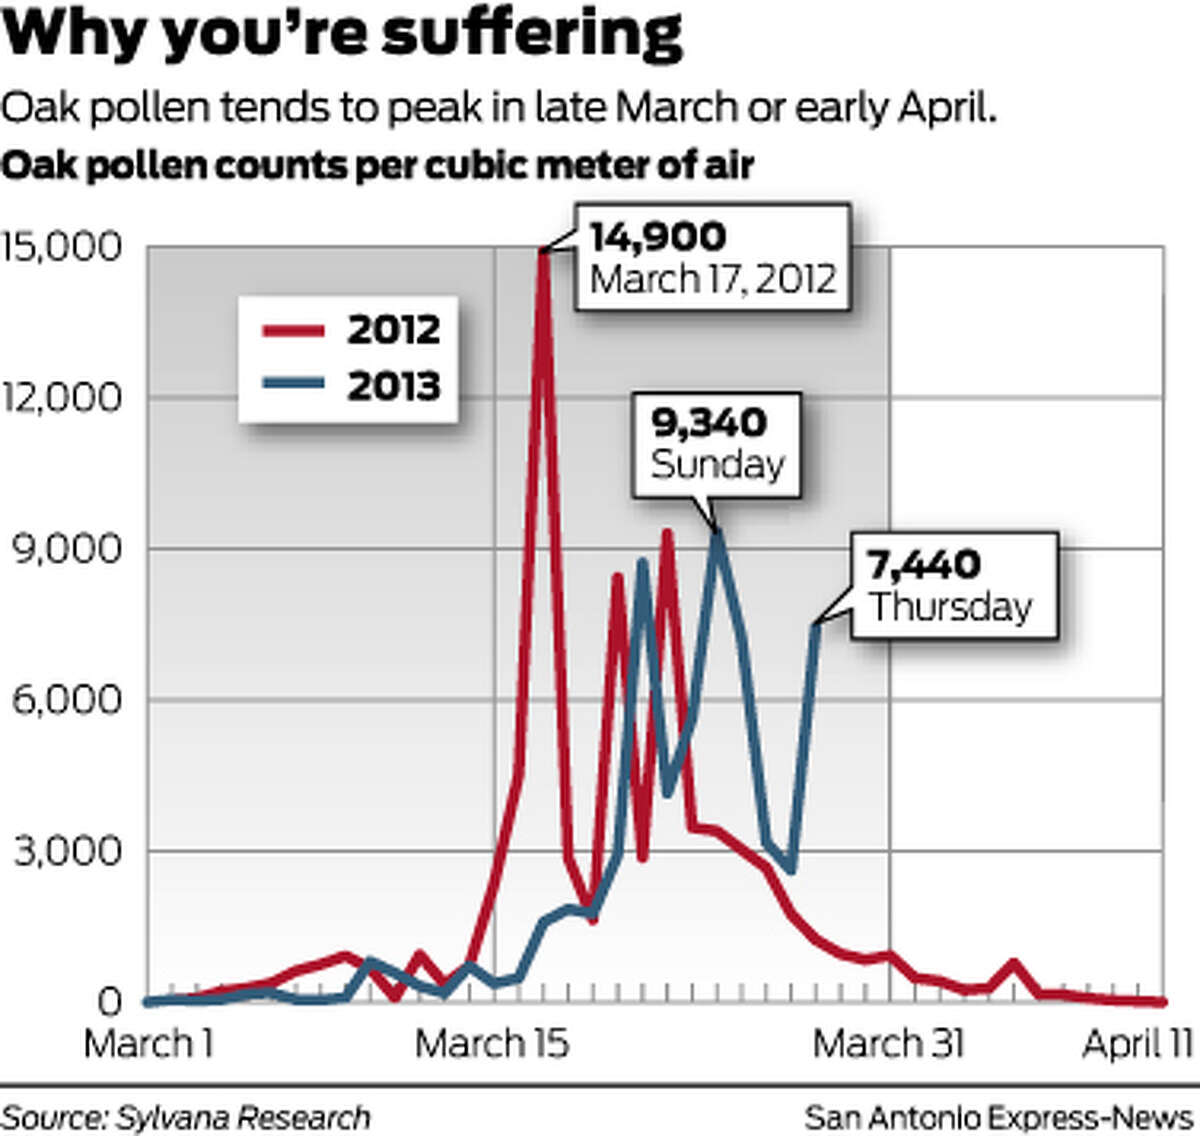 Why you're suffering Oak pollen tends to peak in late March or early April. Oak pollen counts per cubic meter of air